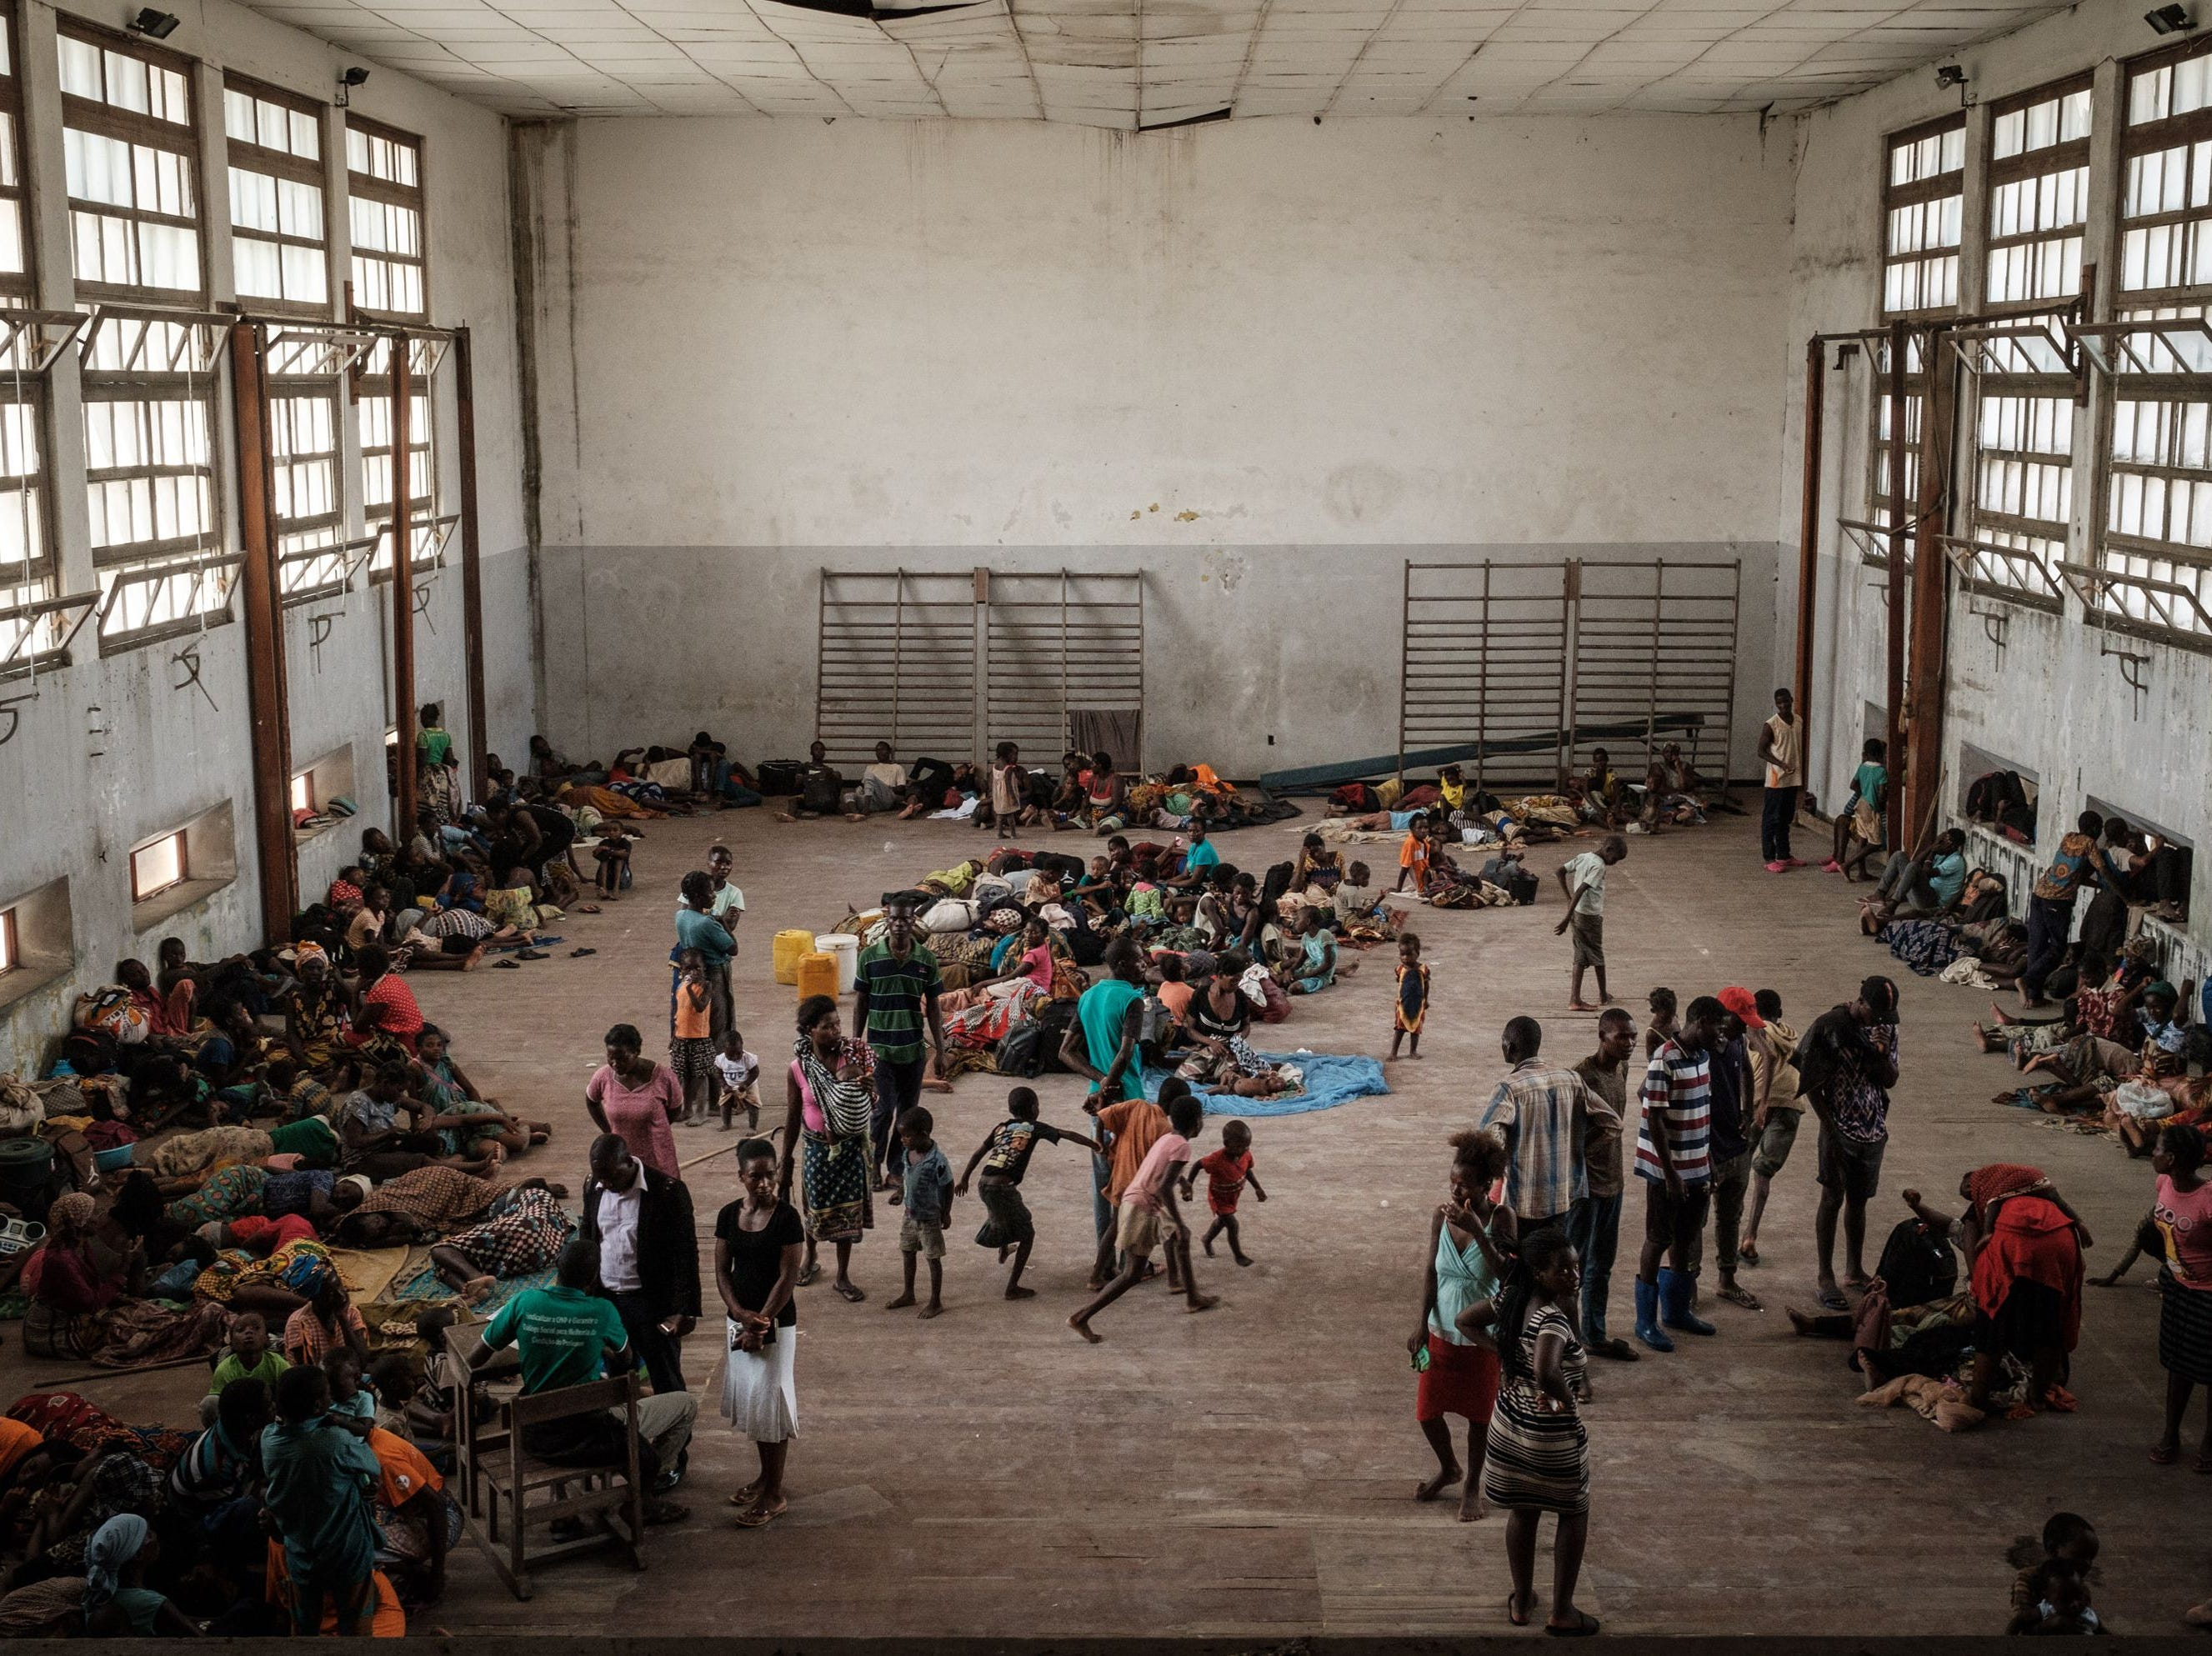 People from the isolated district of Buzi take shelter in the Samora M. Machel secondary school used as an evacuation center in Beira, Mozambique, on March 21, 2019, following the devastation caused by Cyclone Idai.  Aid workers raced against time to help survivors and meet spiraling humanitarian needs in three southern African countries battered by the region's worst storm in years. Six days after tropical cyclone Idai cut a swathe through Mozambique, Zimbabwe and Malawi, the confirmed death toll stood at more than 300 and hundreds of thousands of lives were at risk, officials said.